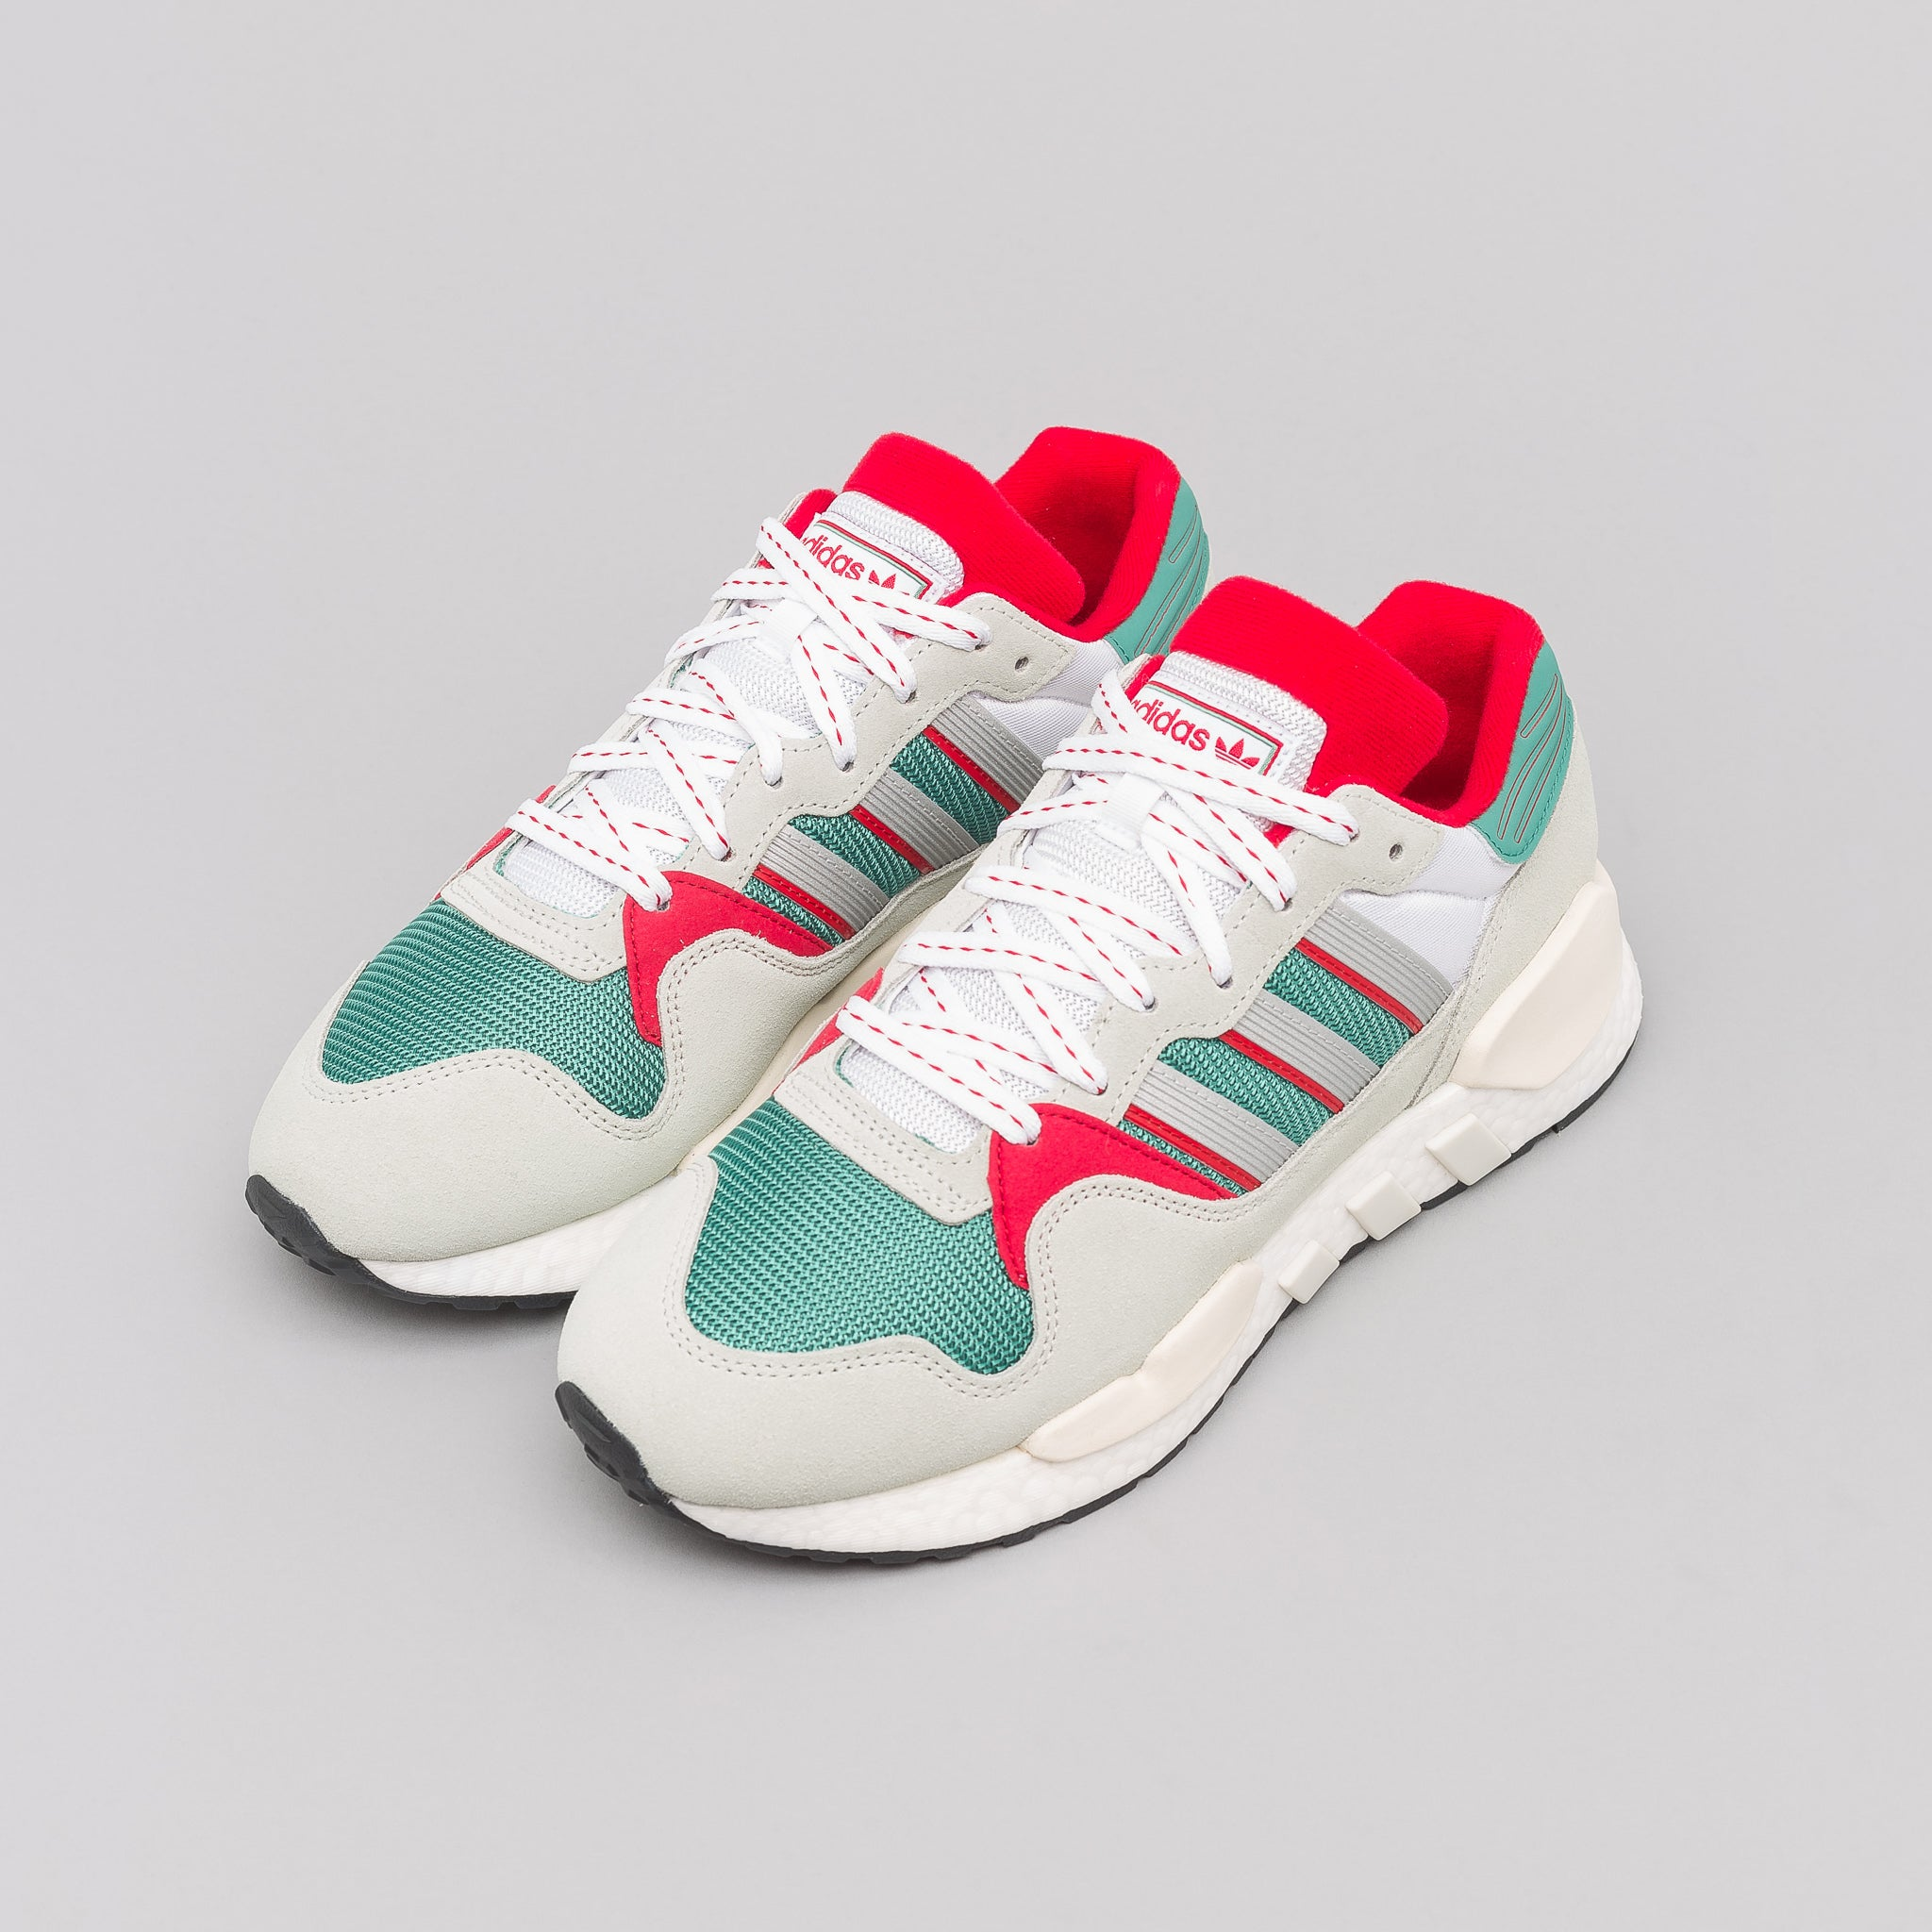 ZX930 x EQT in White/Grey